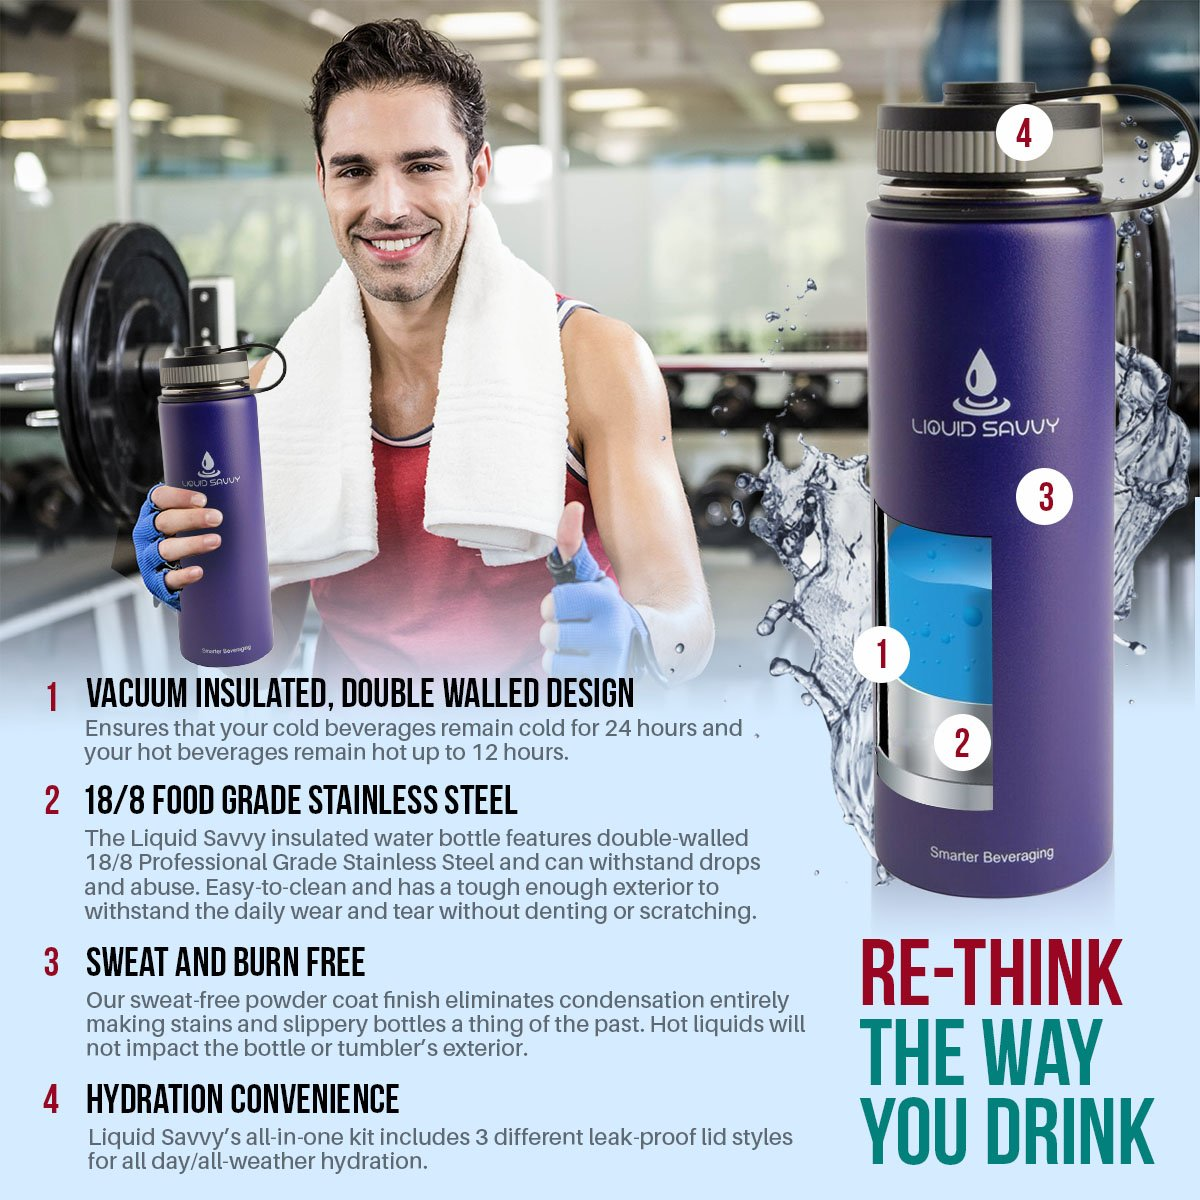 Liquid Savvy 24oz Insulated Water Bottle with 3 lids - Stainless Steel, Wide Mouth Double Walled Vacuum Insulated Bottle for Hot and Cold Beverages (Gray) by Liquid Savvy (Image #4)